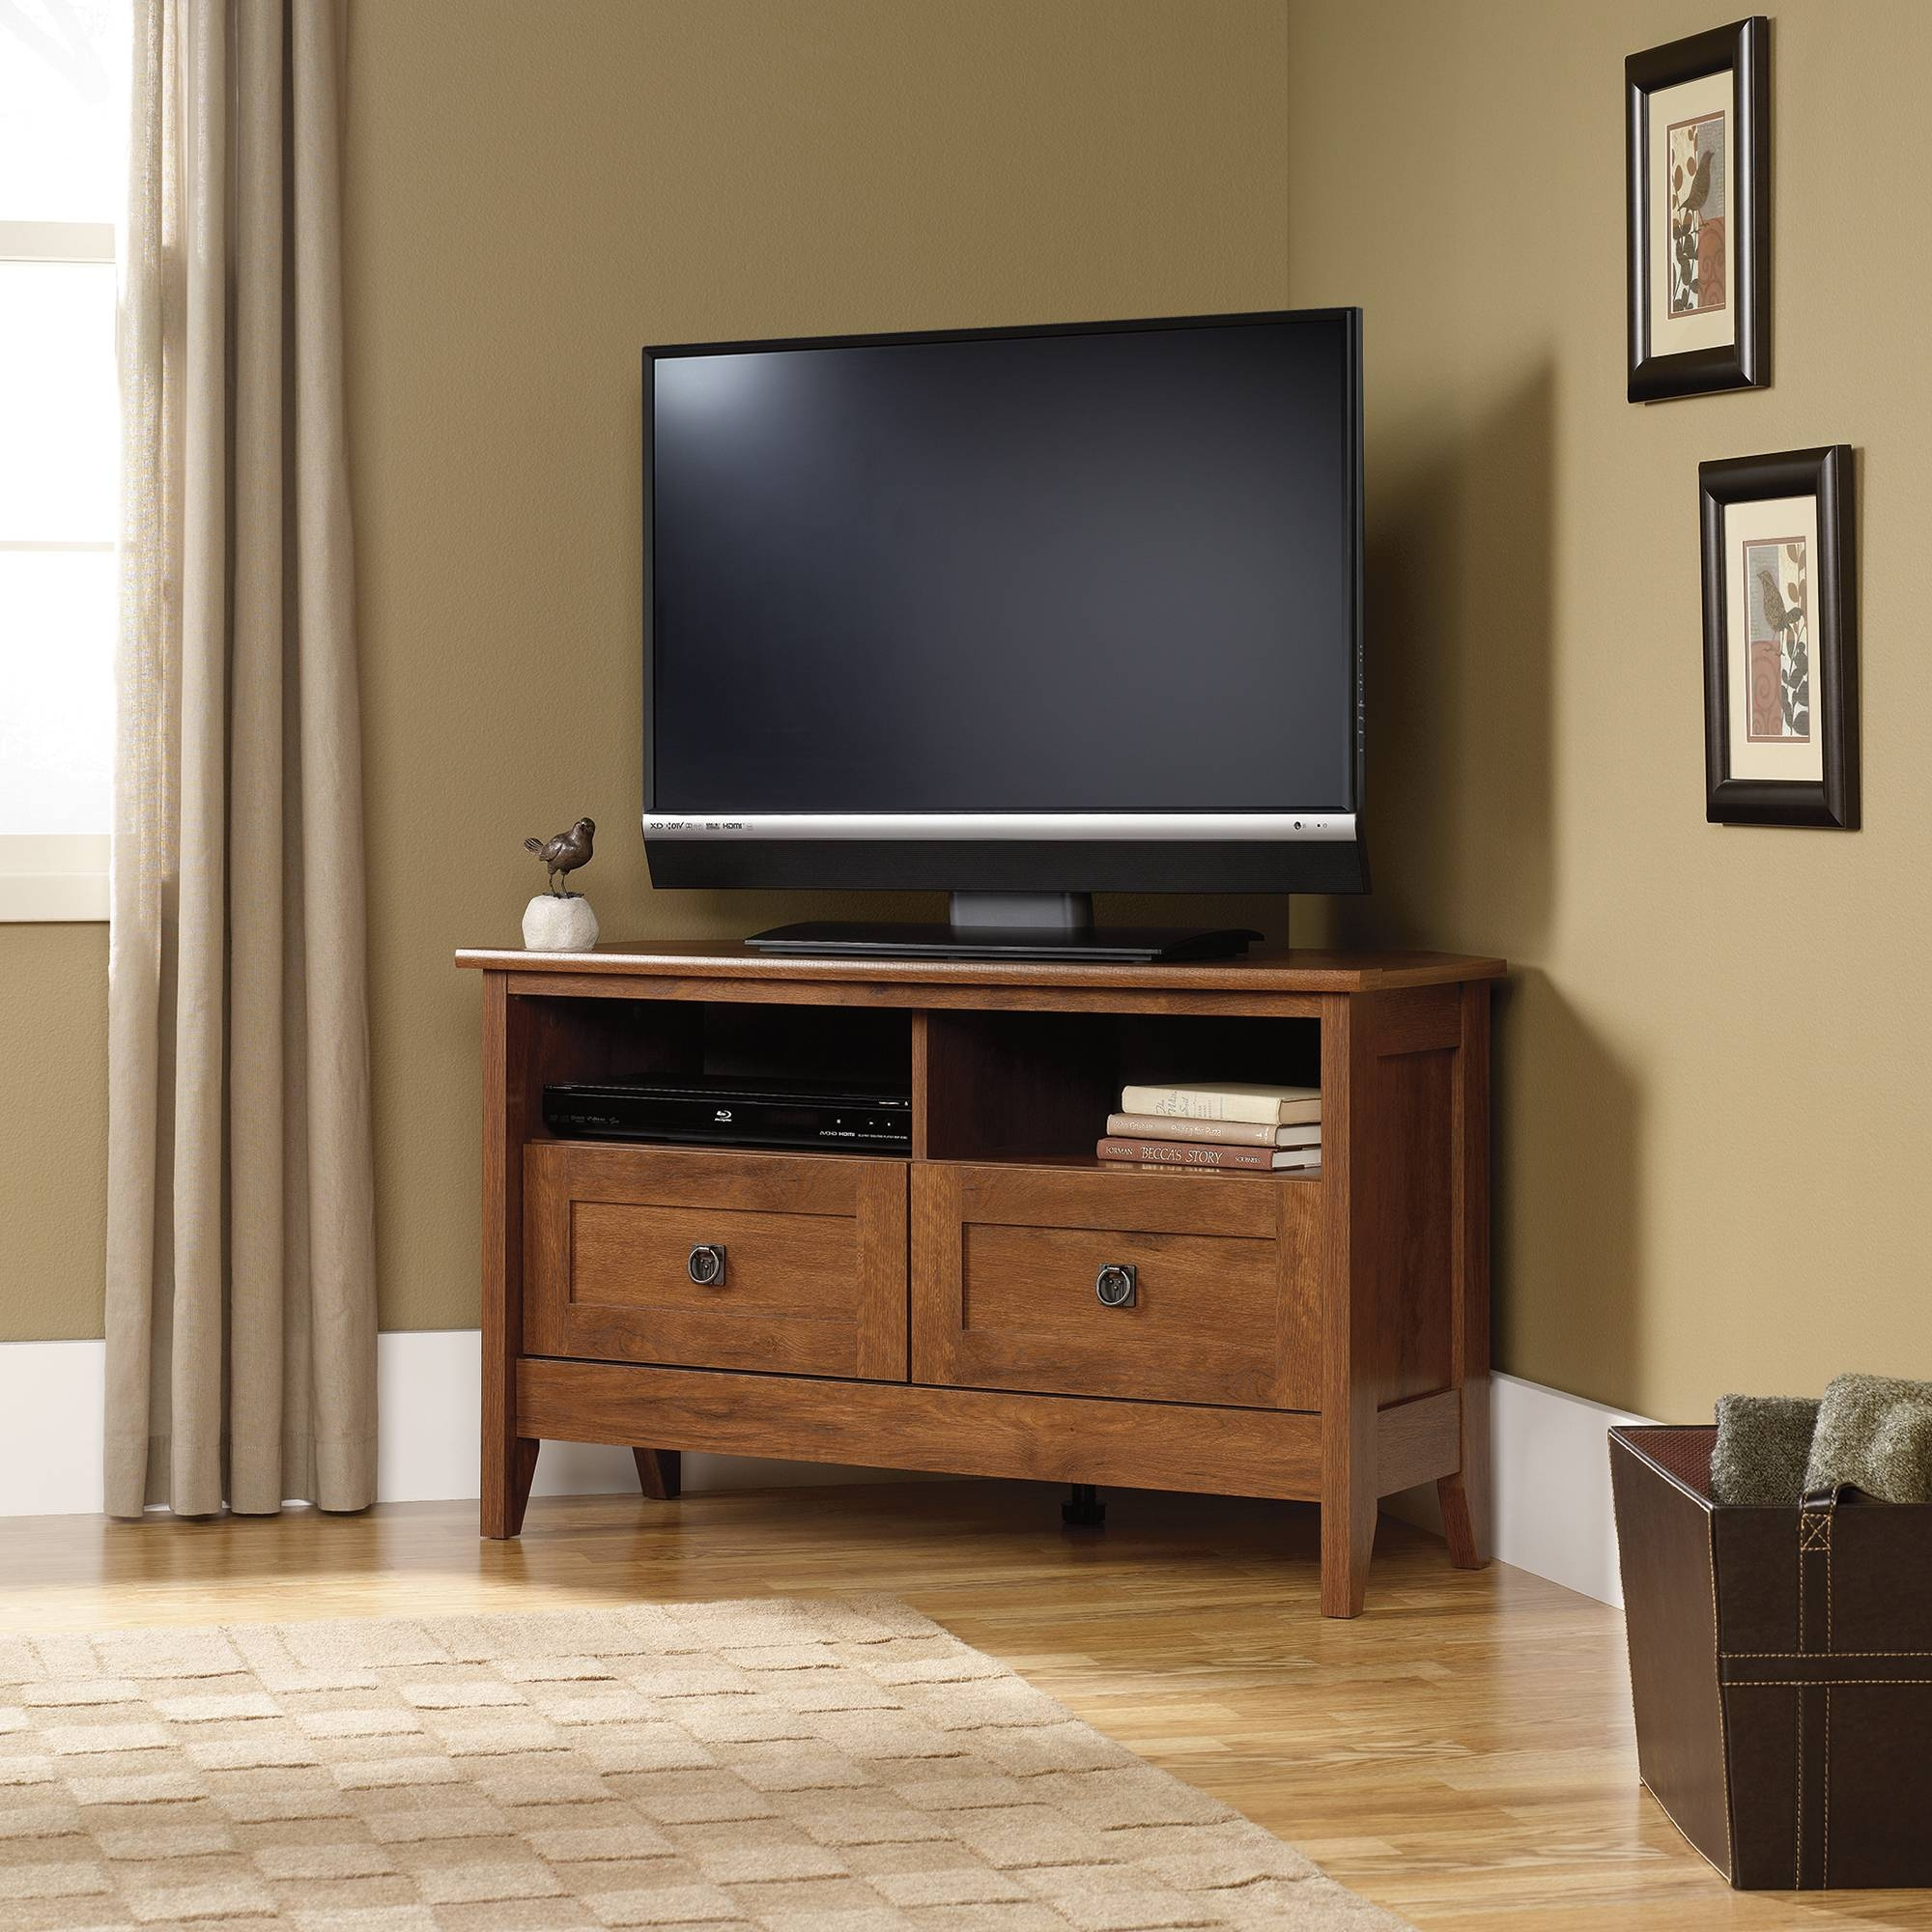 Sauder Select | Corner Tv Stand | 410627 | Sauder Intended For Corner Tv Cabinets For Flat Screens With Doors (View 11 of 15)